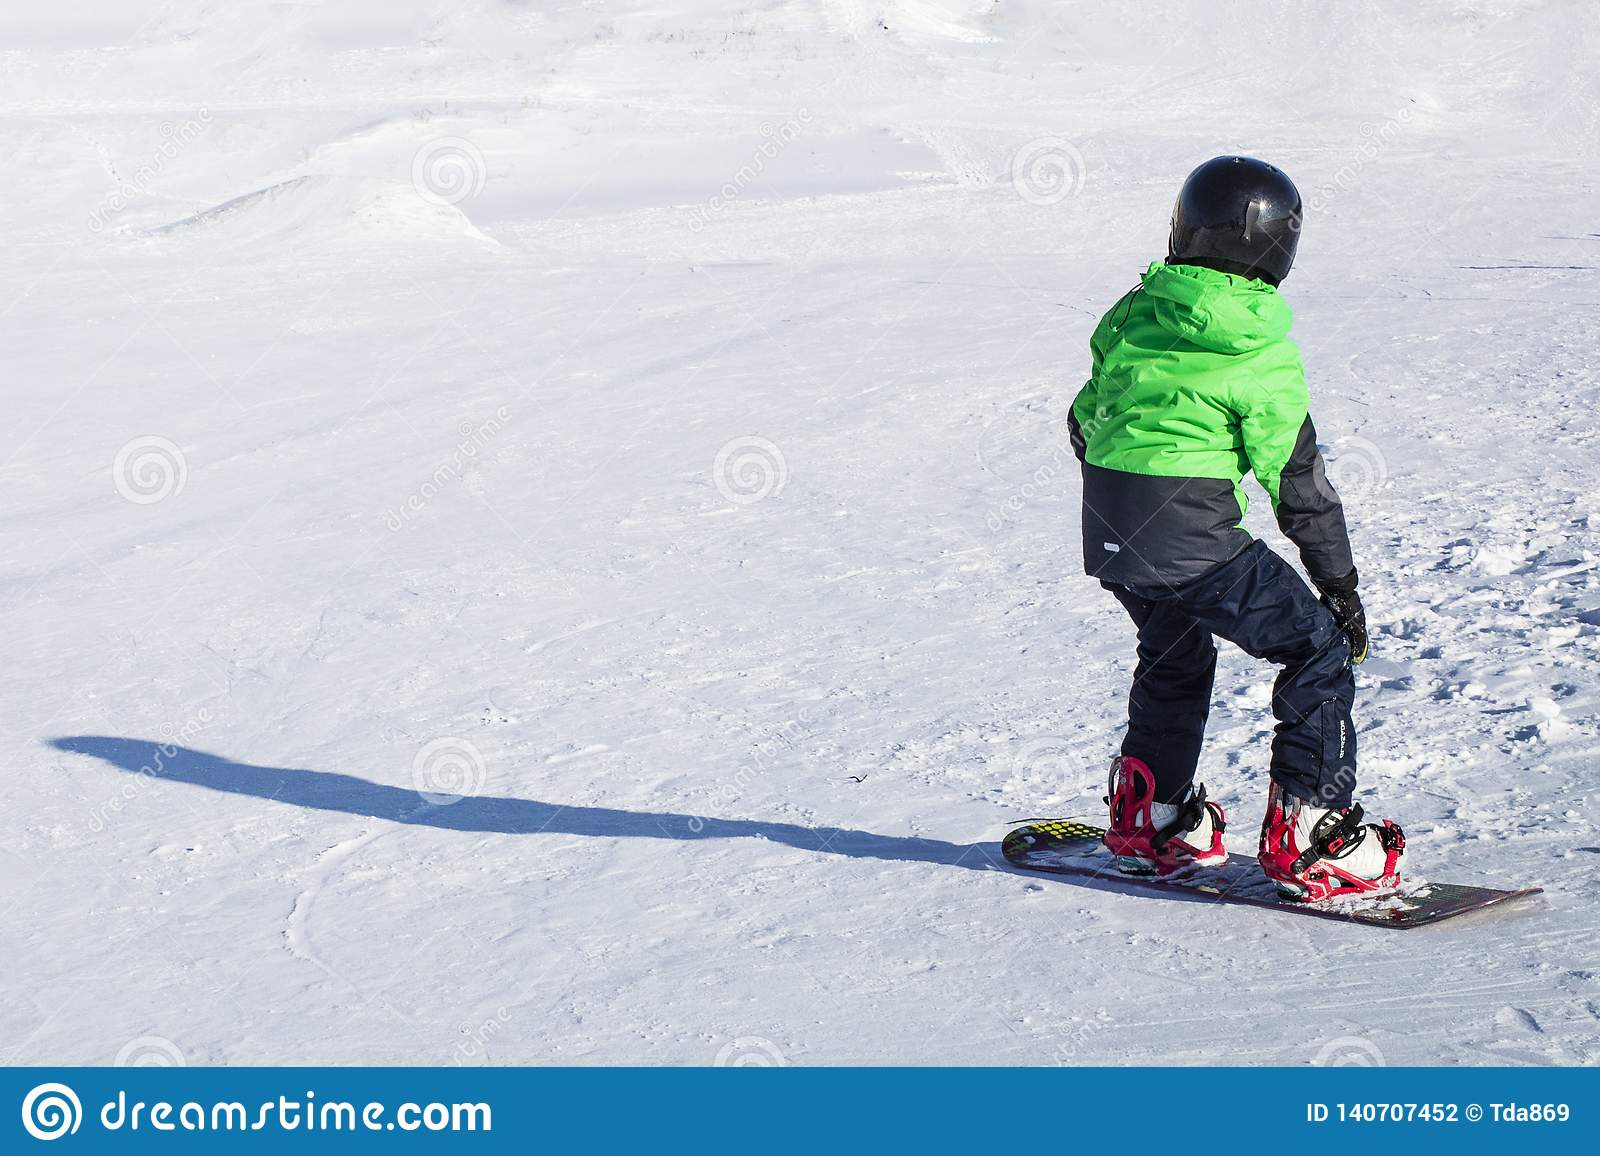 Kid on snowboard in winter sunset nature. Sport photo with edit space